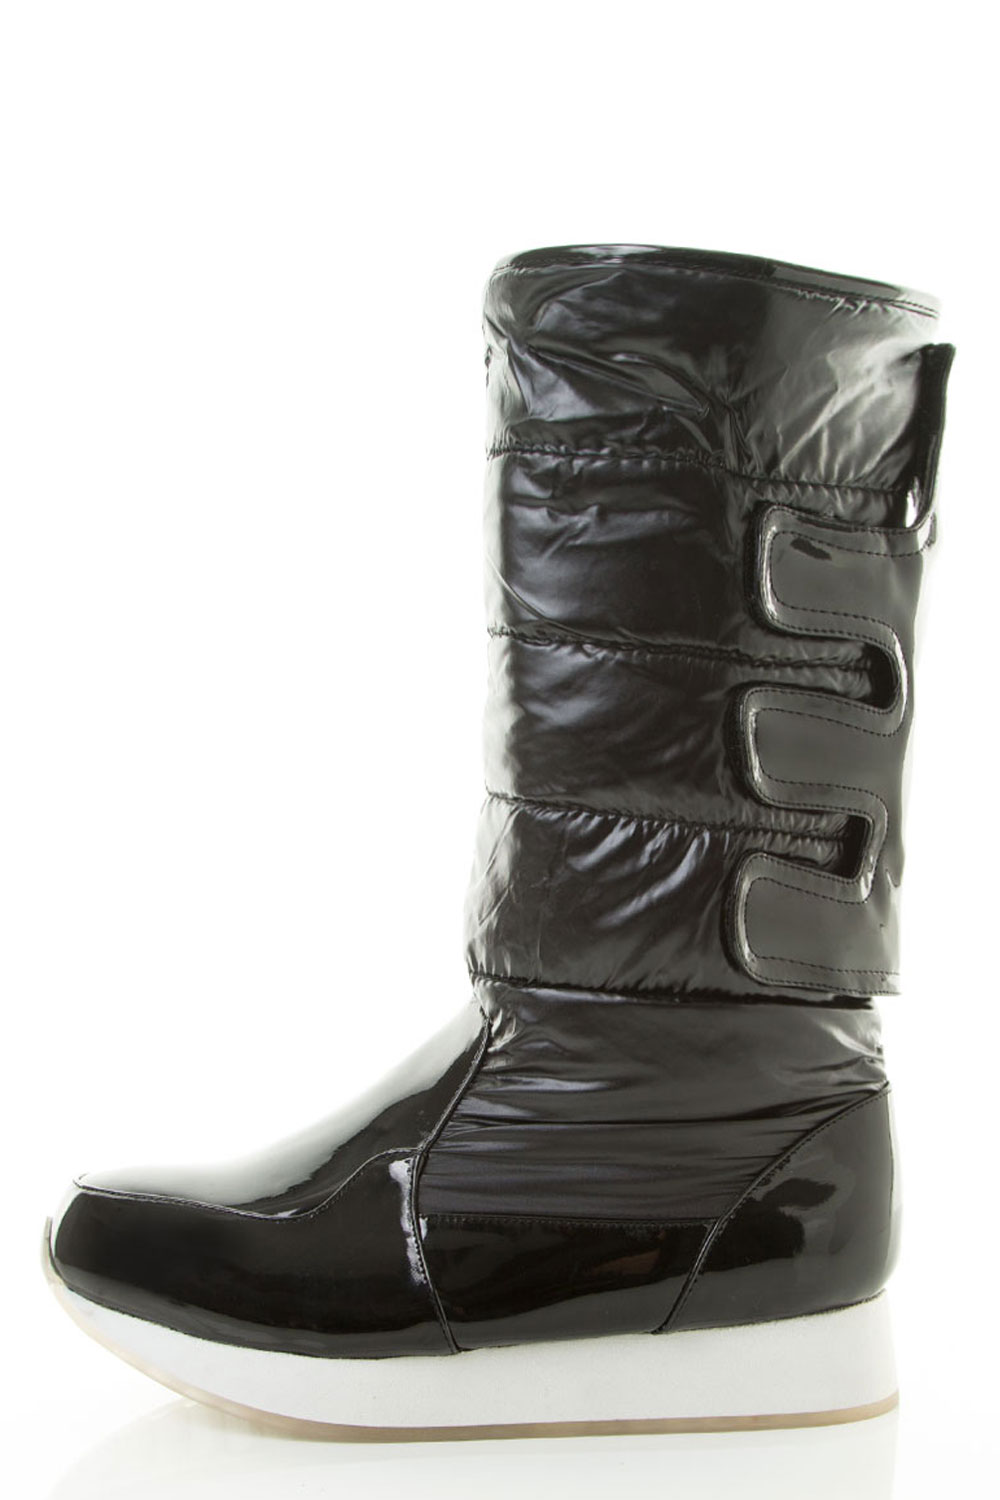 Mid Calf Puffy Low Platform Round Toe Winter Booties